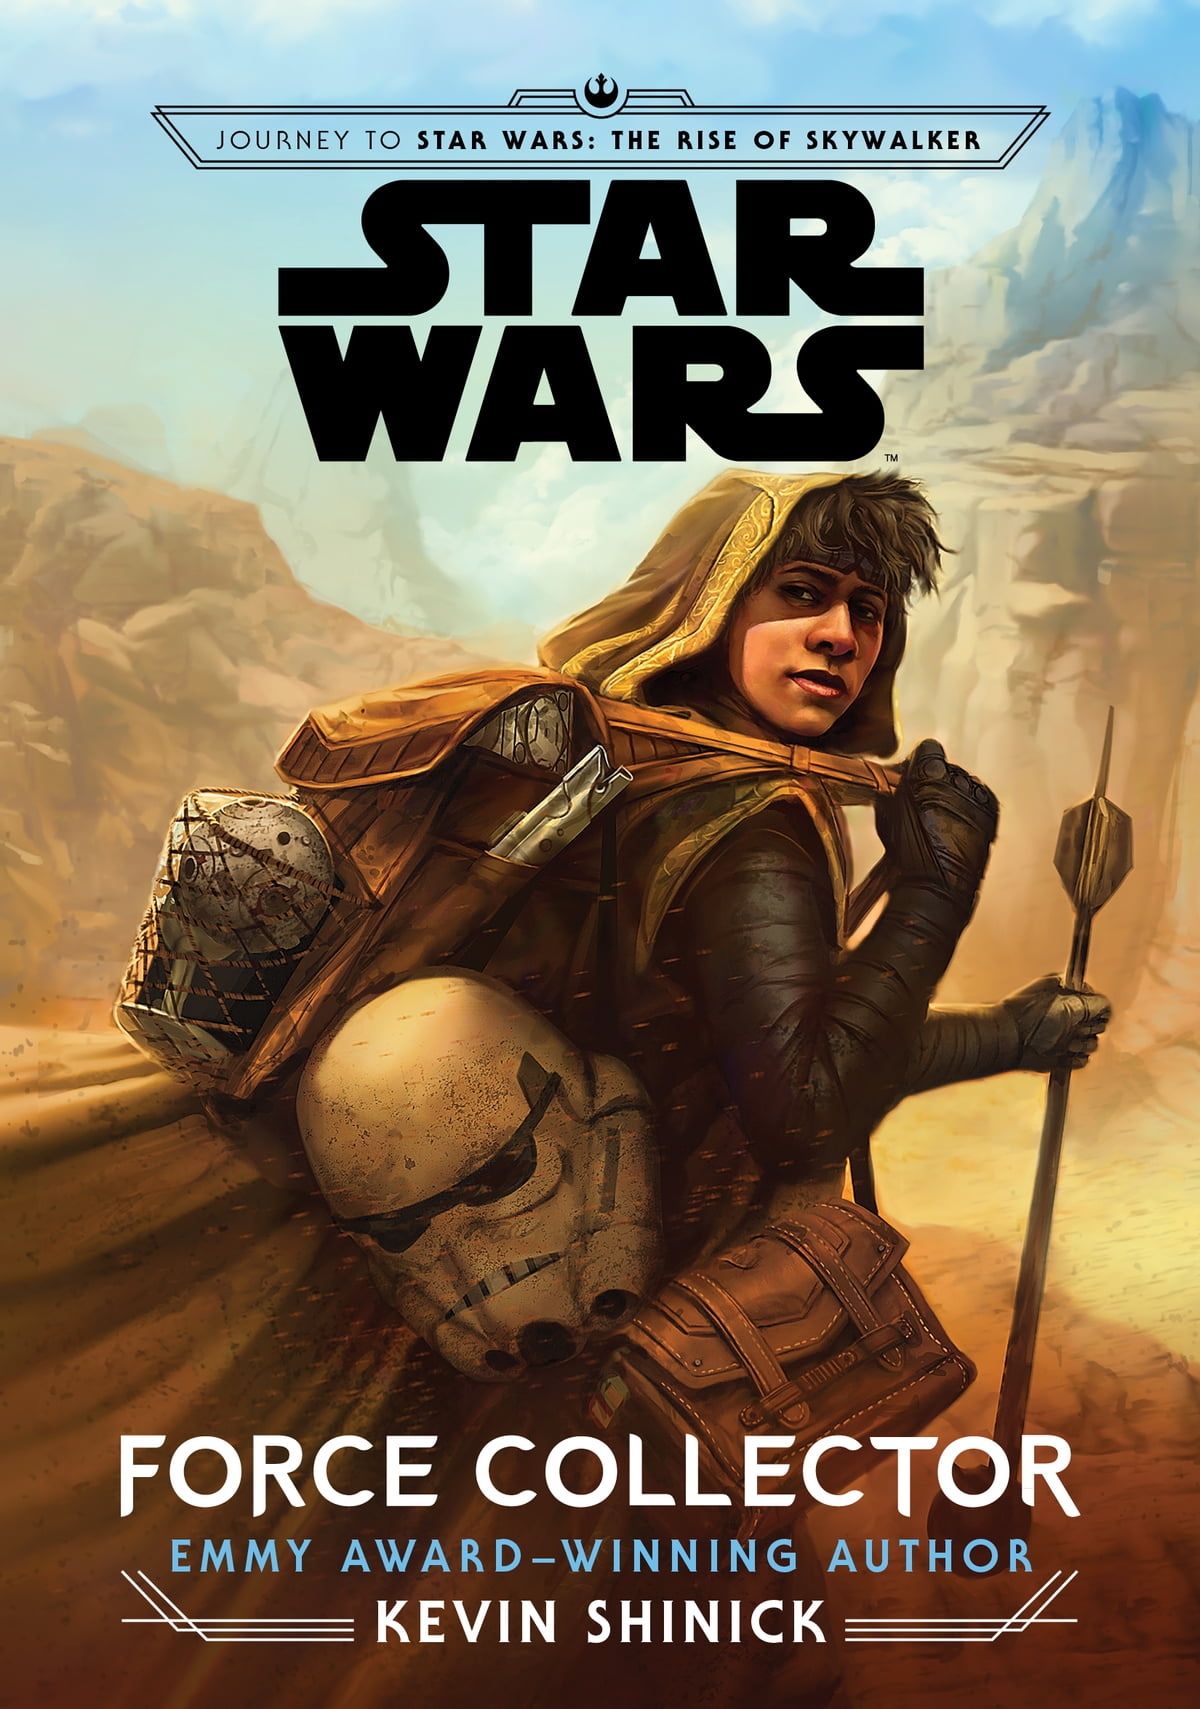 Journey To Star Wars The Rise Of Skywalker Force Collector Ebook By Kevin Shinick 9781368051064 Rakuten Kobo United States